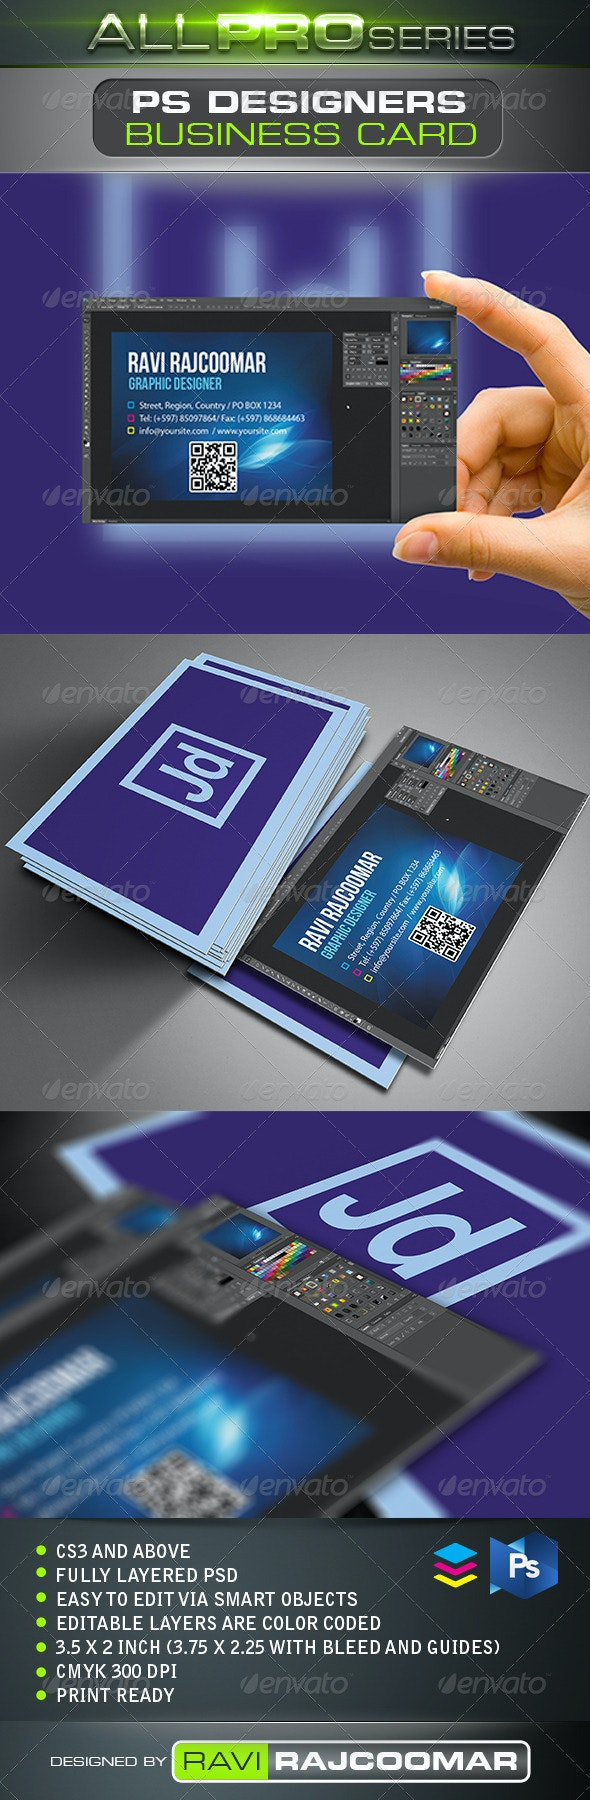 PS Designers Business Card - Creative Business Cards